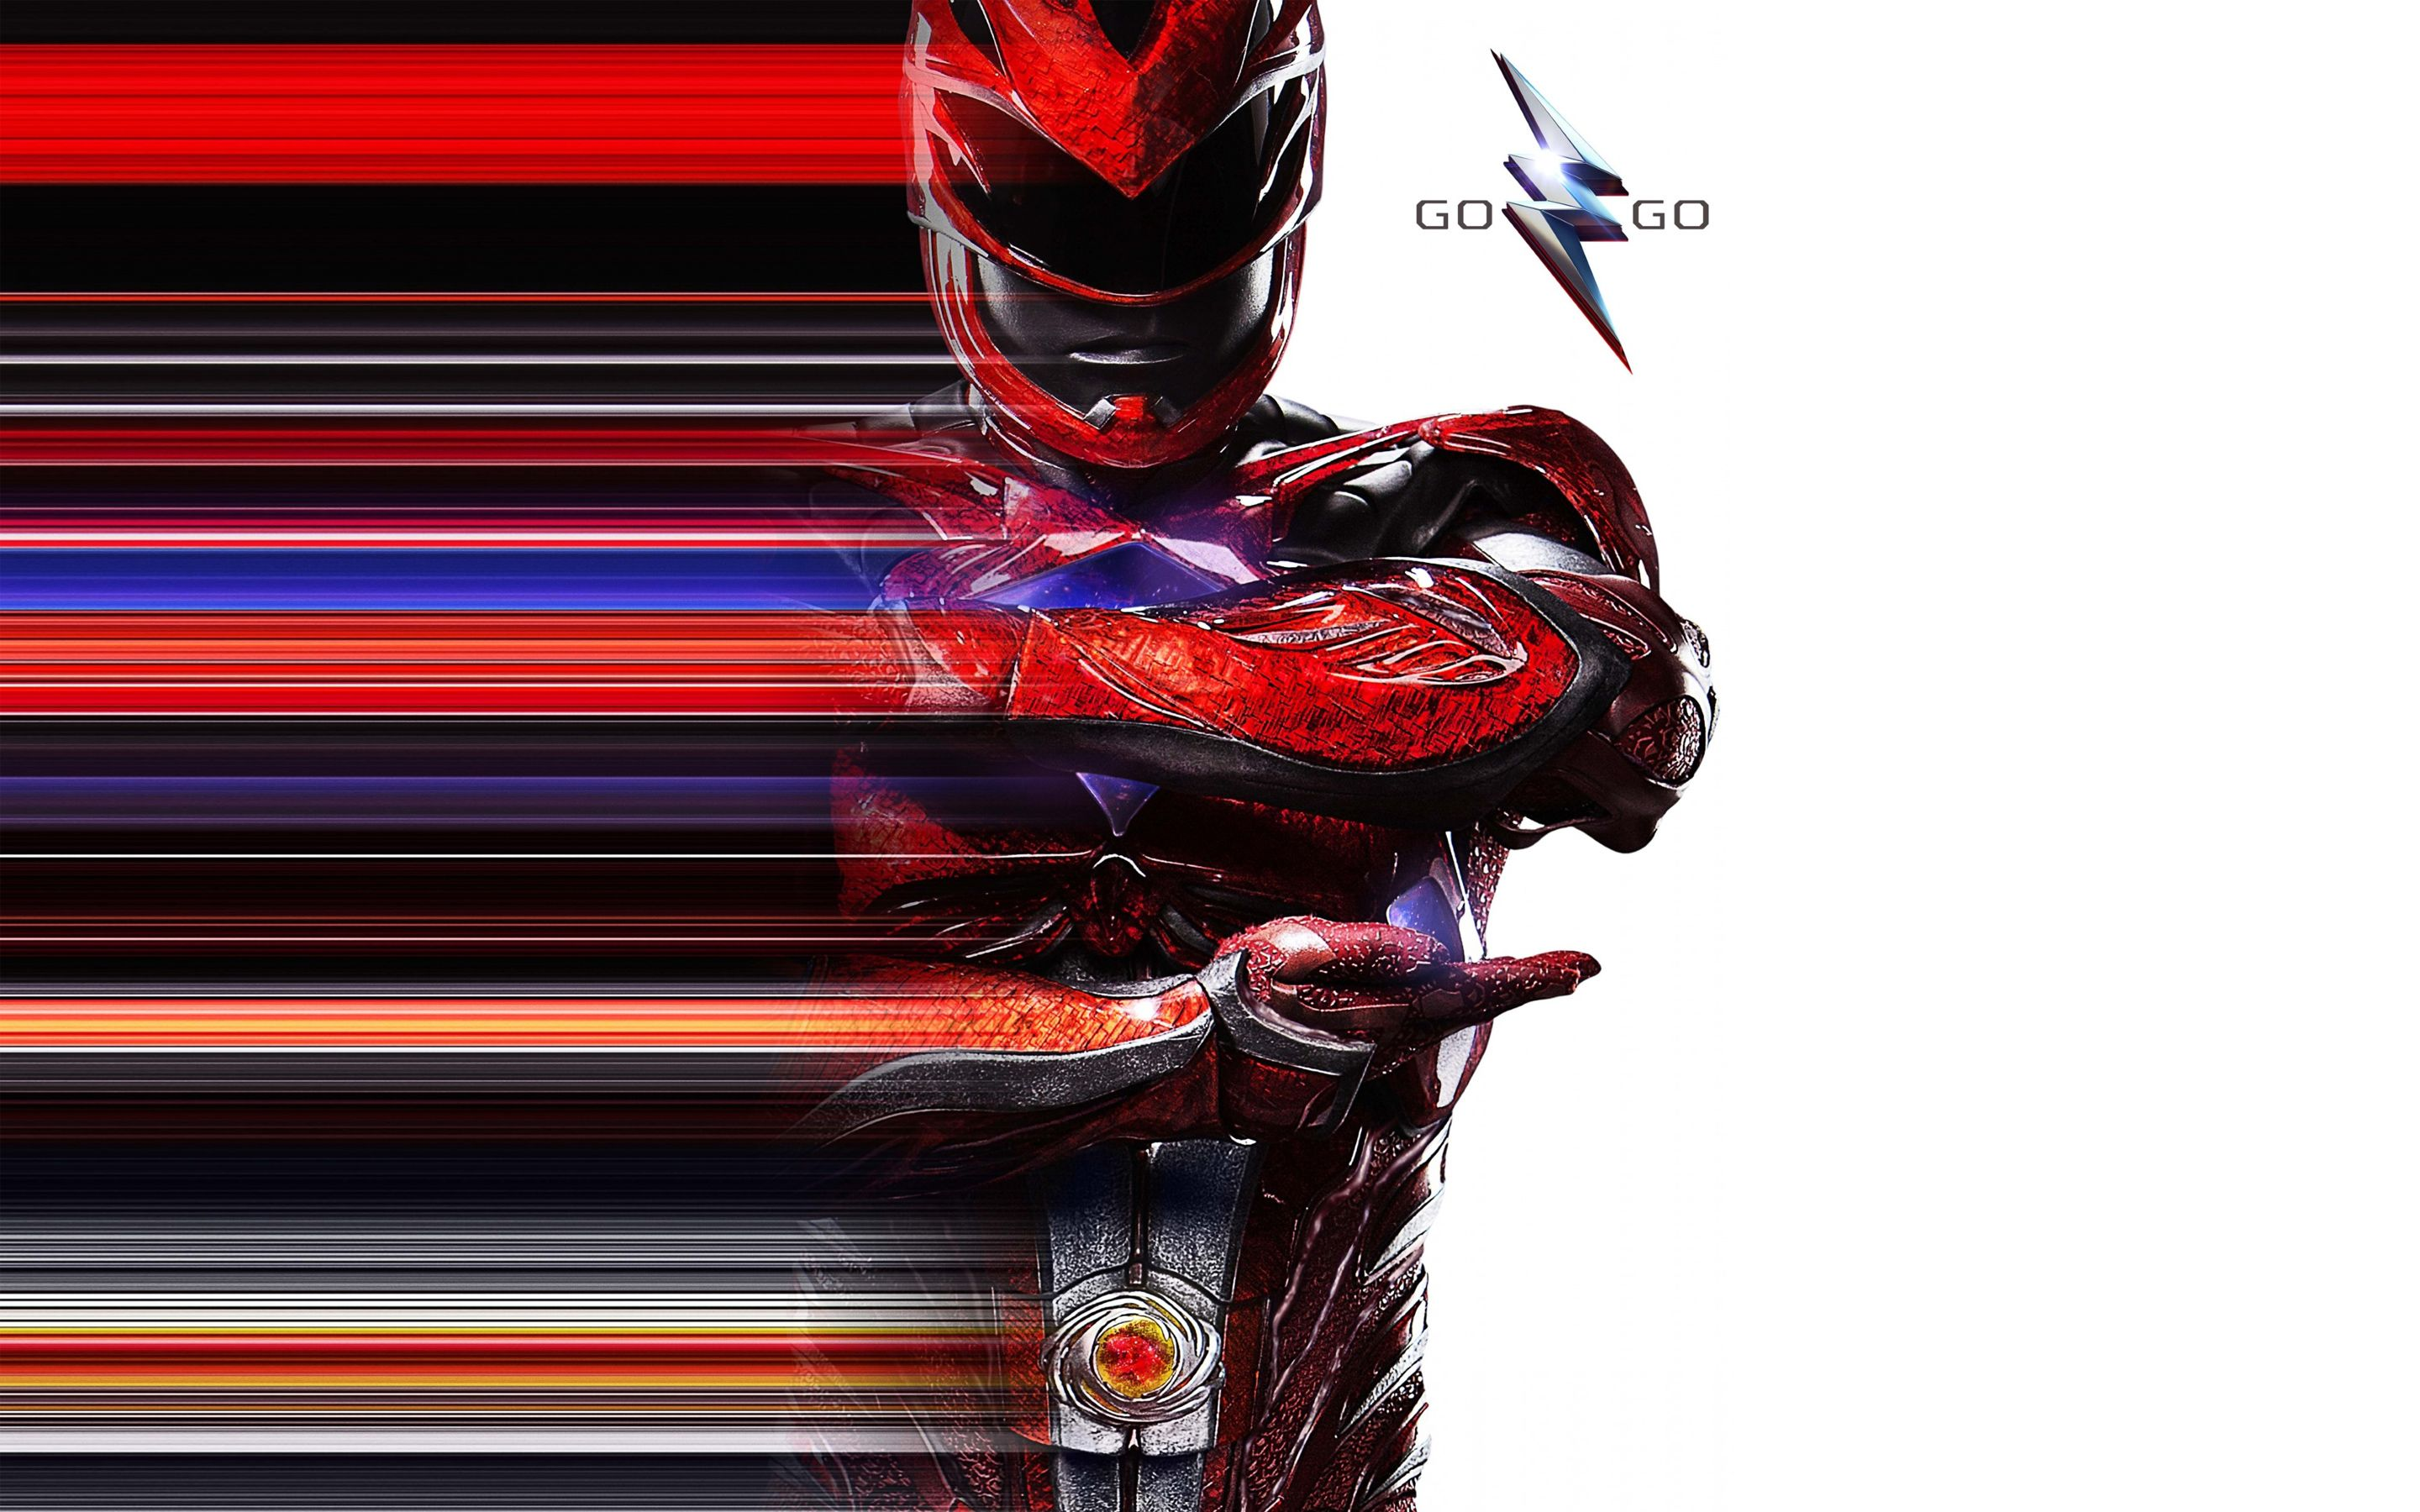 Power Rangers 2017 Zords Wallpaper Movies Hd Wallpapers Movies 2